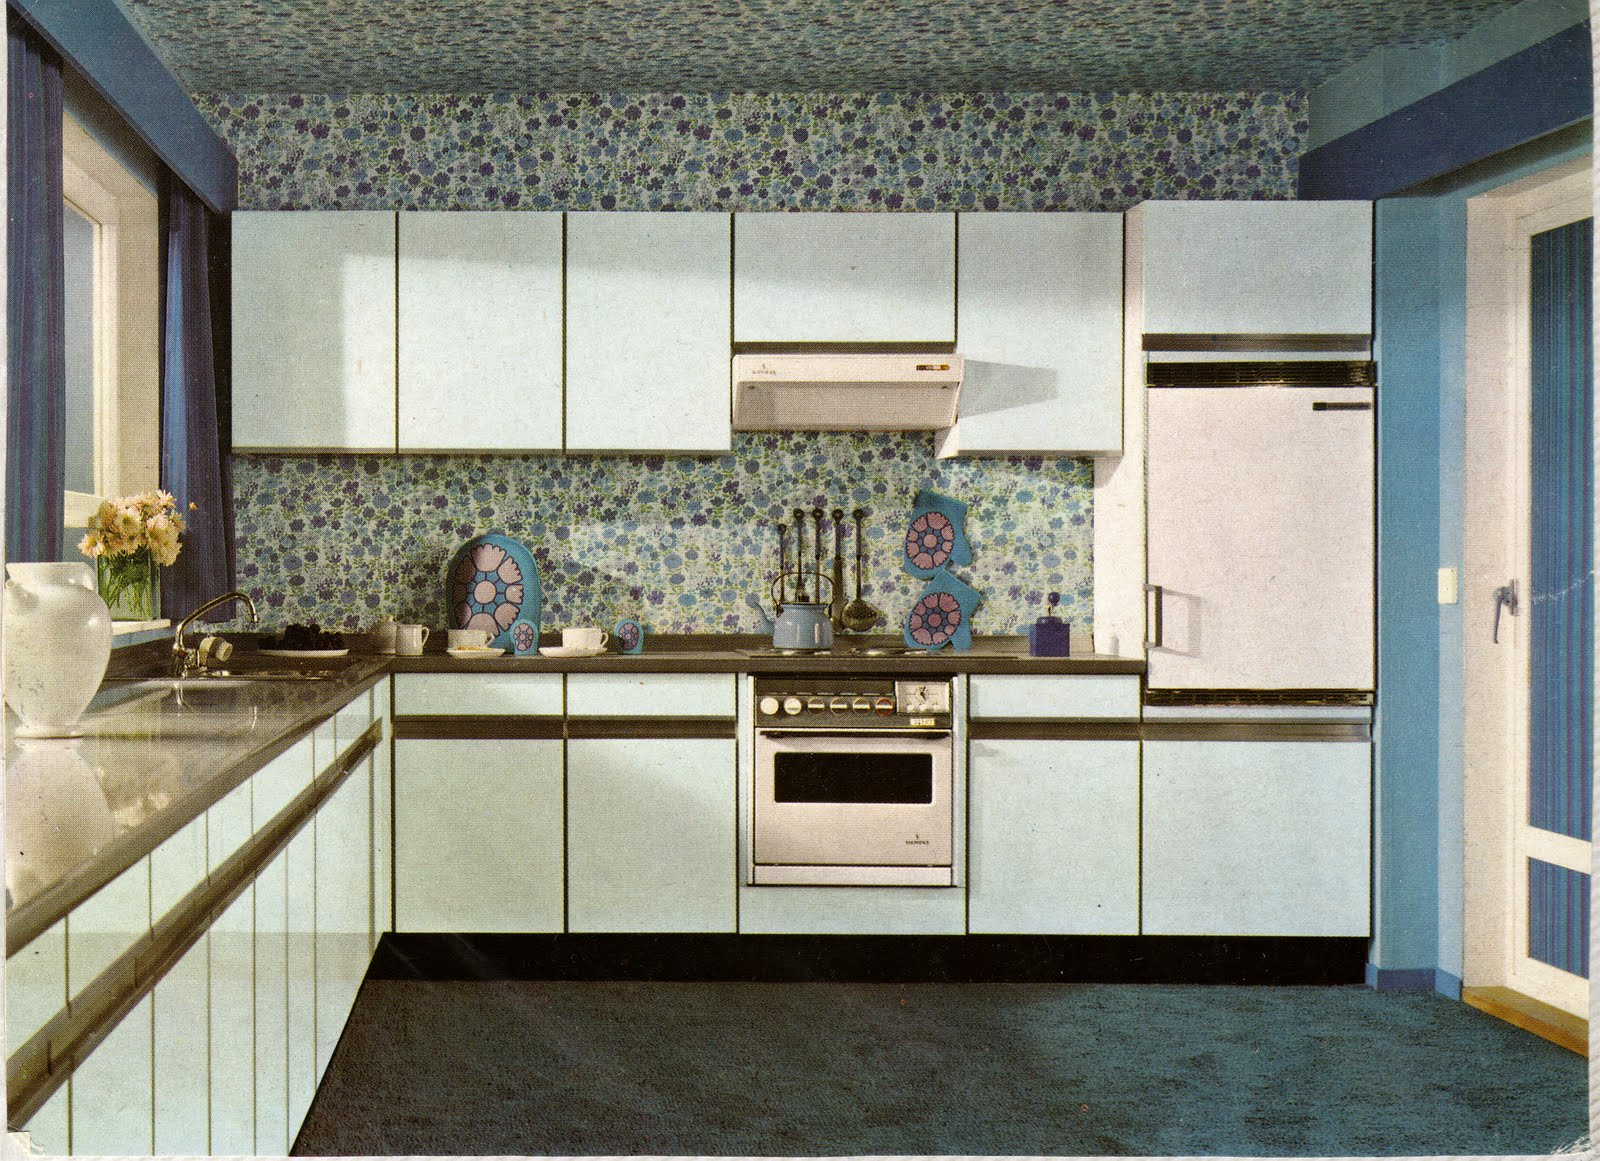 Coordinated Kitchen and Bath - 1970\'s - Vancouver Kitchen and ...